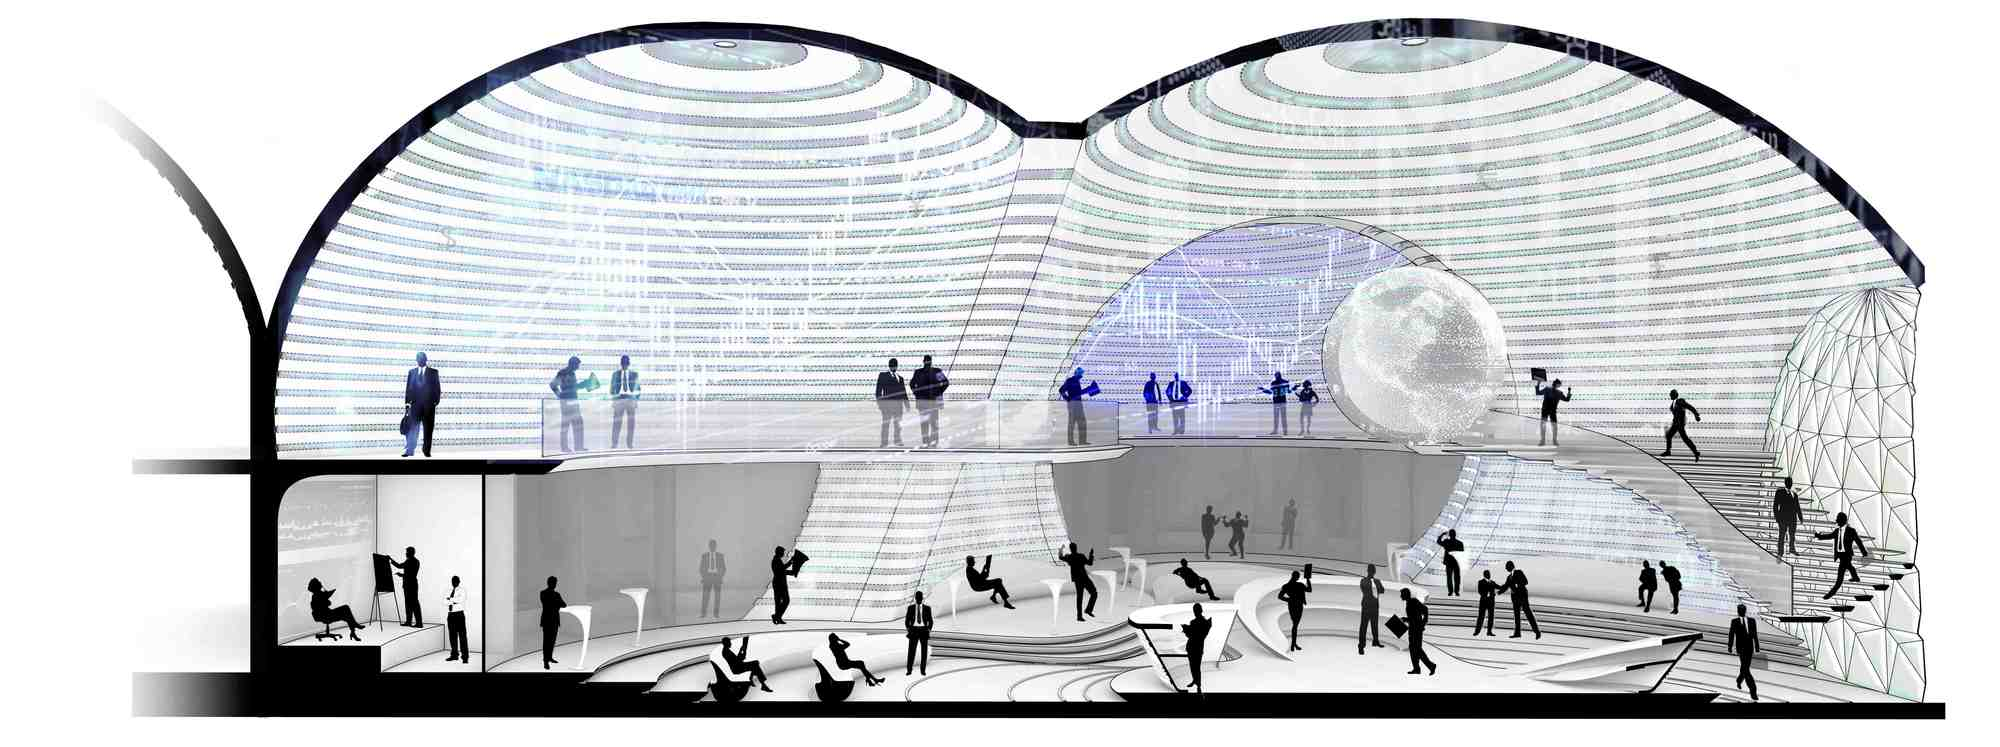 Gallery of Tehran Stock Exchange Competition Entry / LAVA - 4